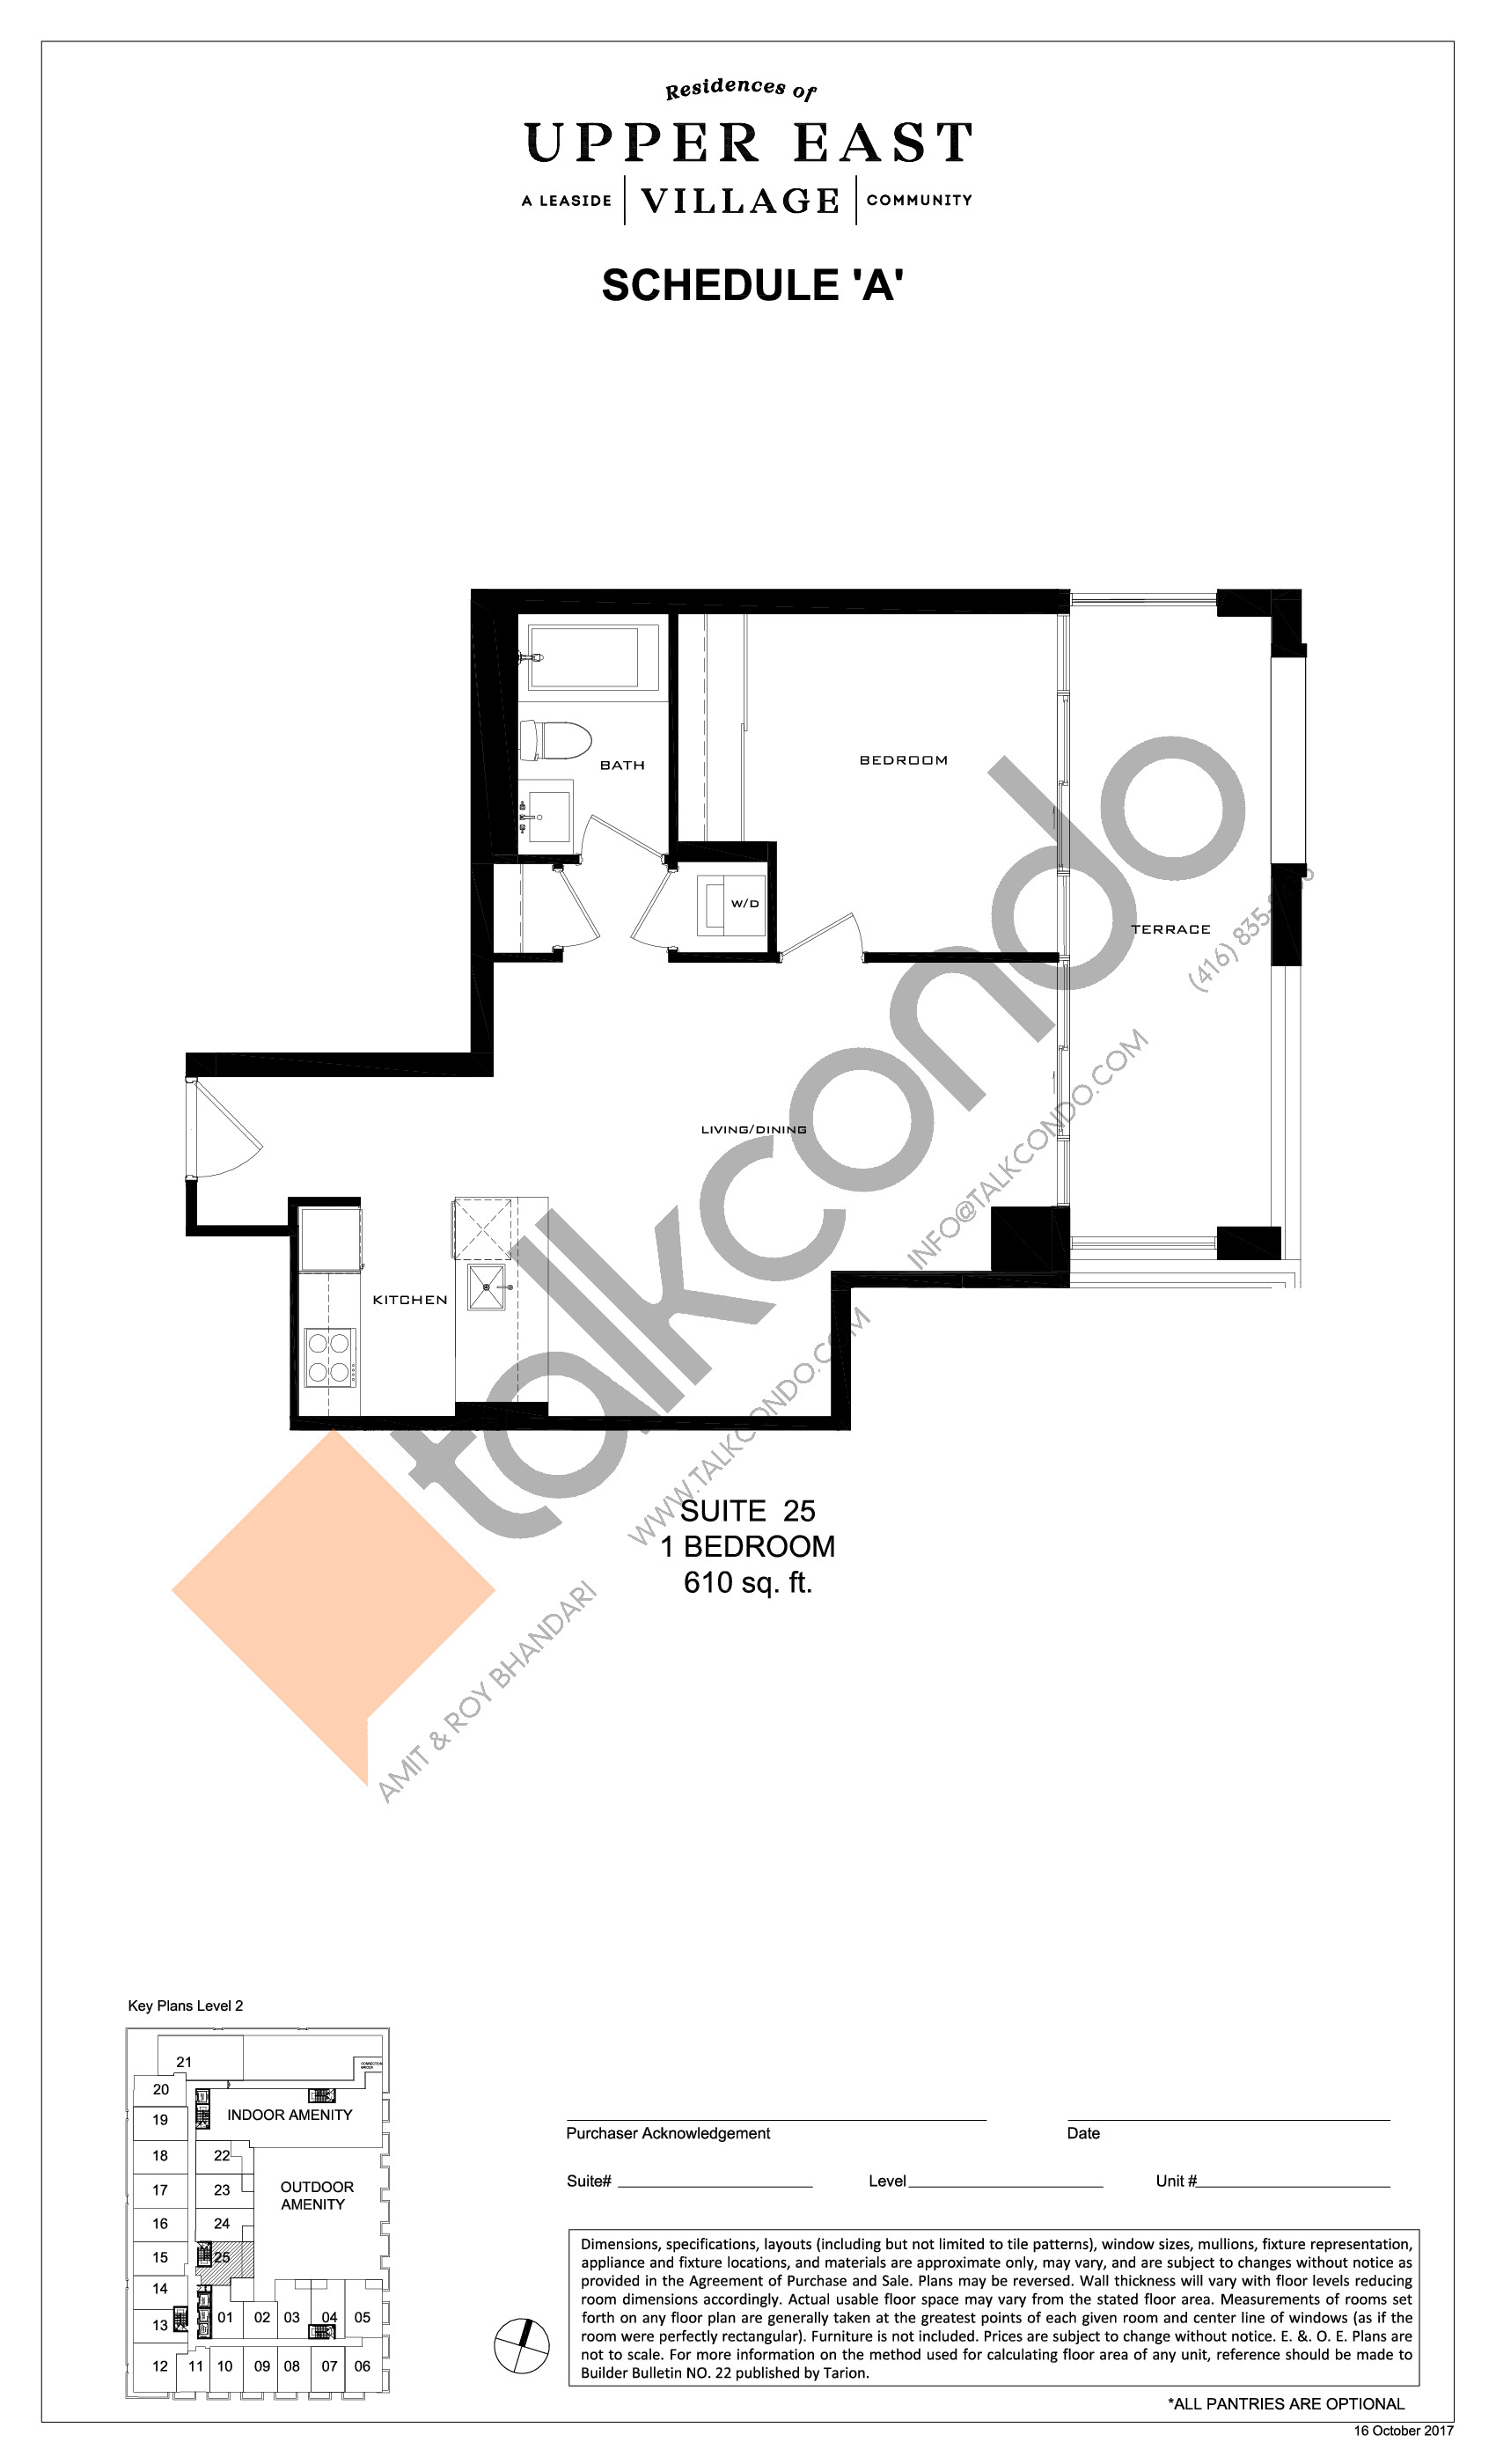 Suite 25 Floor Plan at Upper East Village Condos - 610 sq.ft